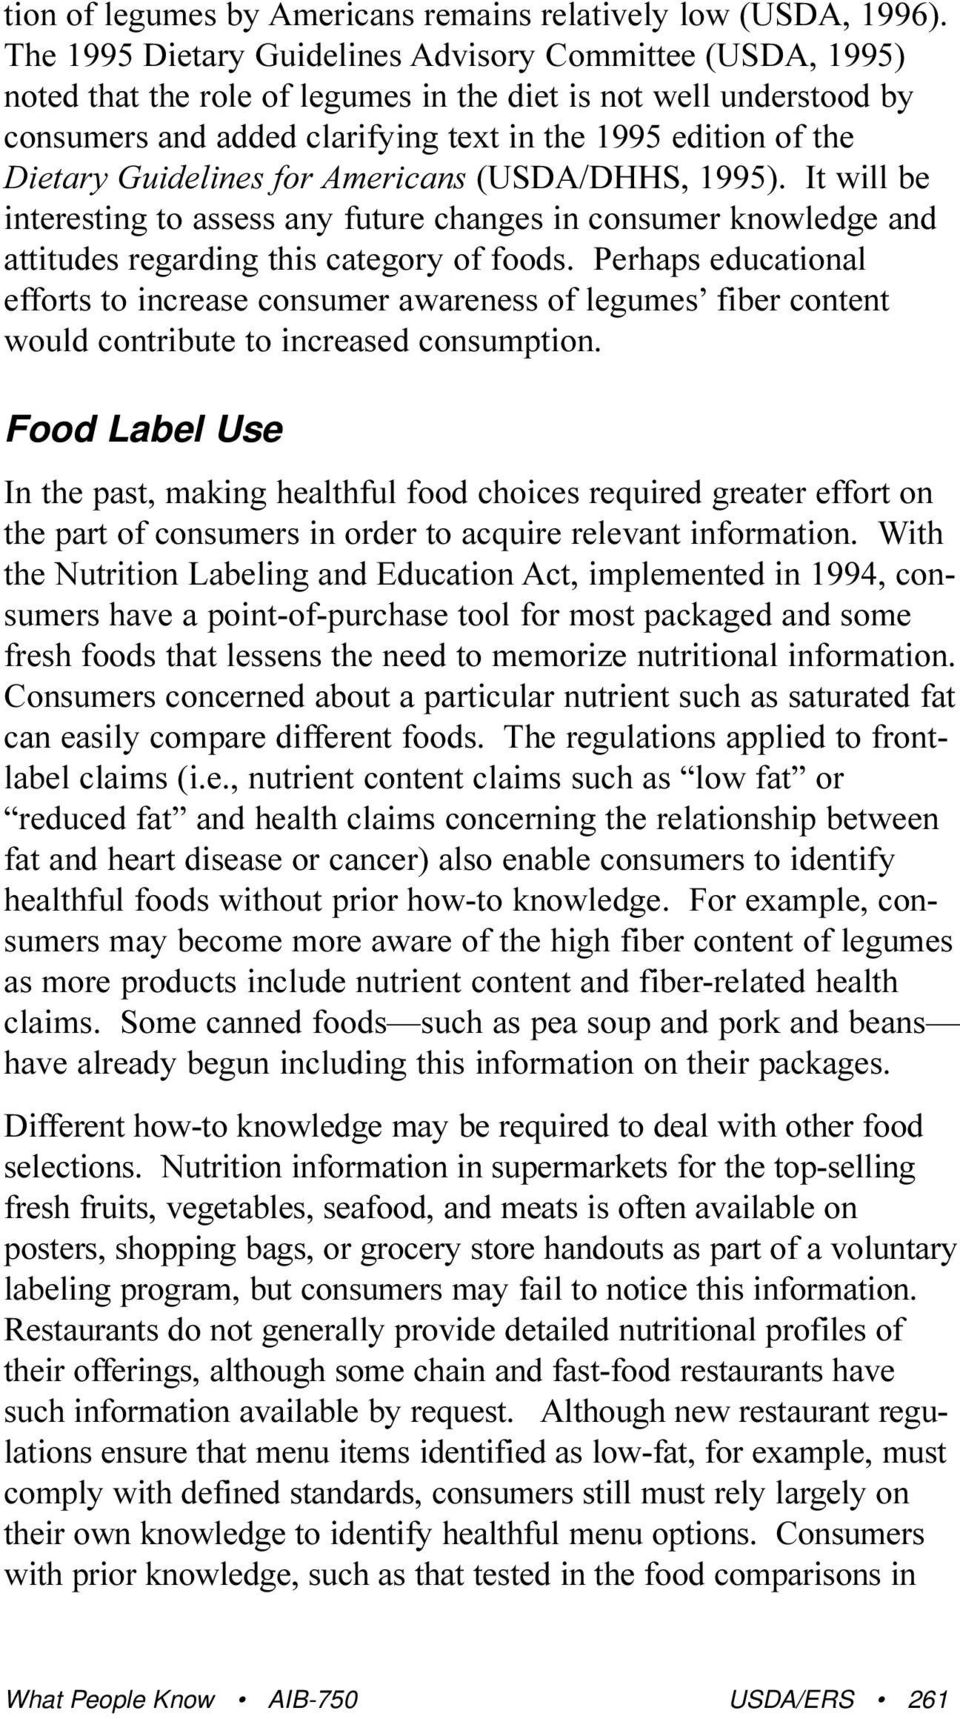 Guidelines for Americans (USDA/DHHS, 1995). It will be interesting to assess any future changes in consumer knowledge and attitudes regarding this category of foods.